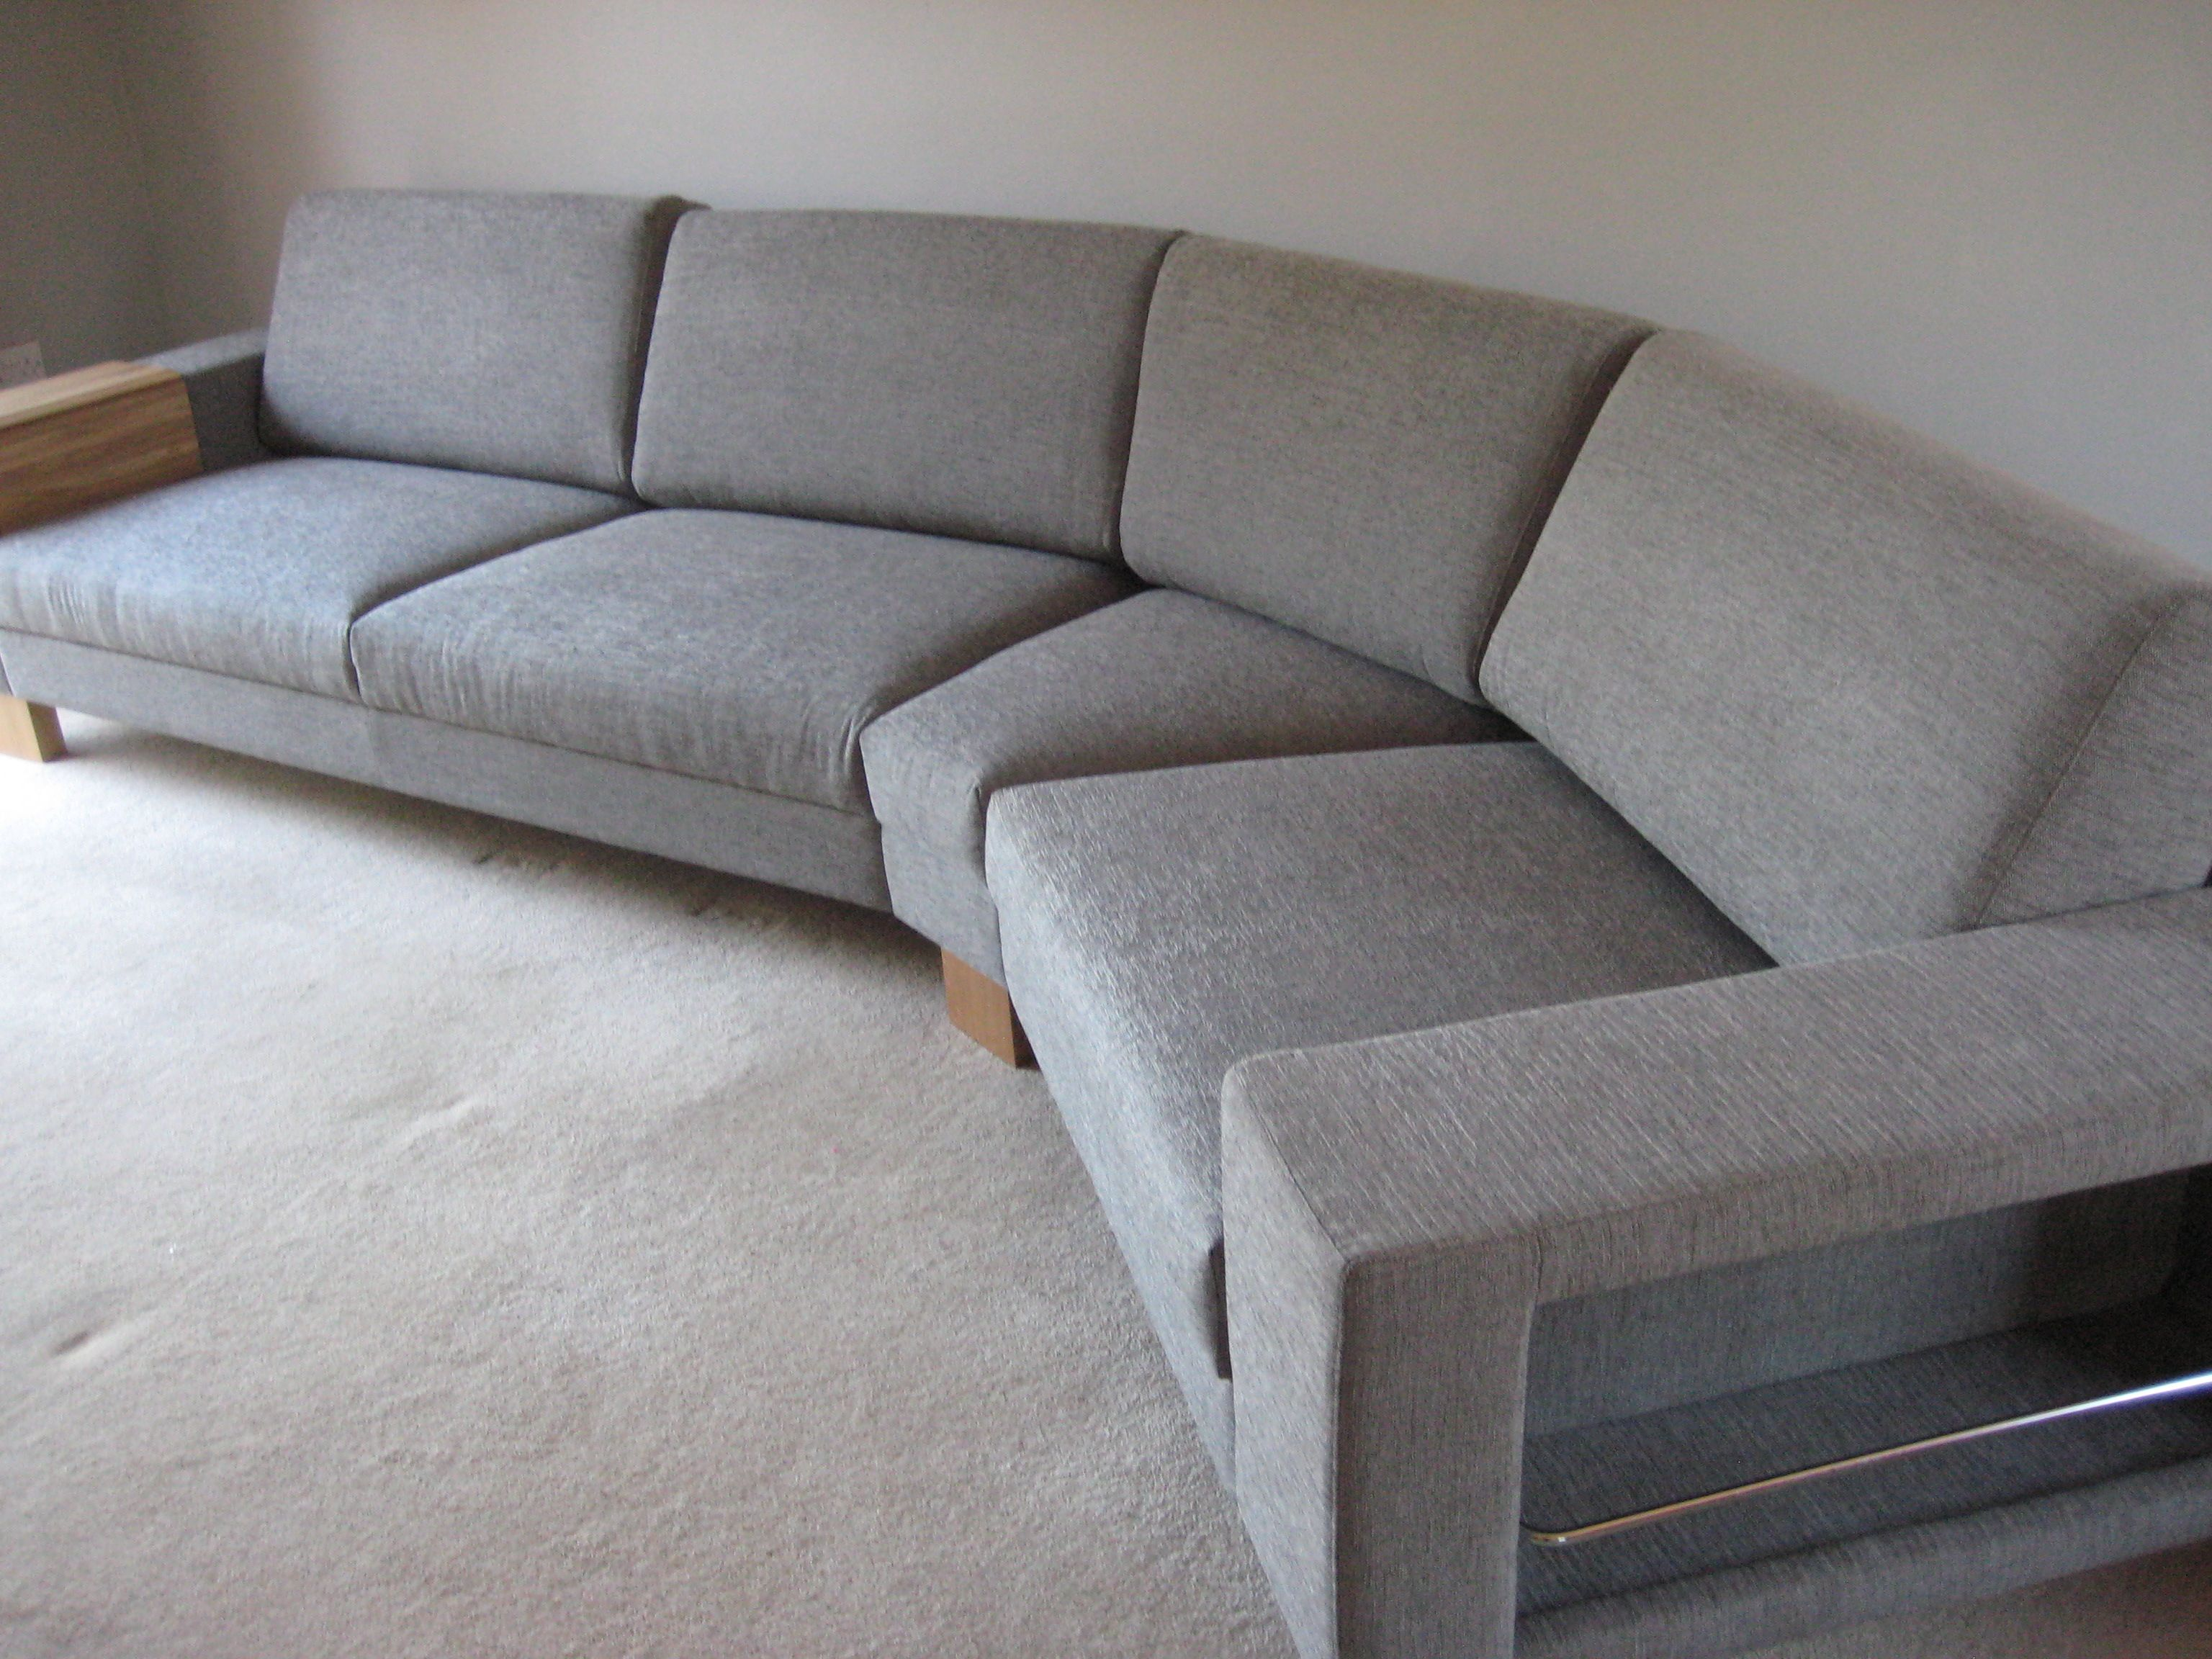 Sofa Hudson Möbelhaus Corlyus Sectional Seating This Comprises Of A Left Arm 180